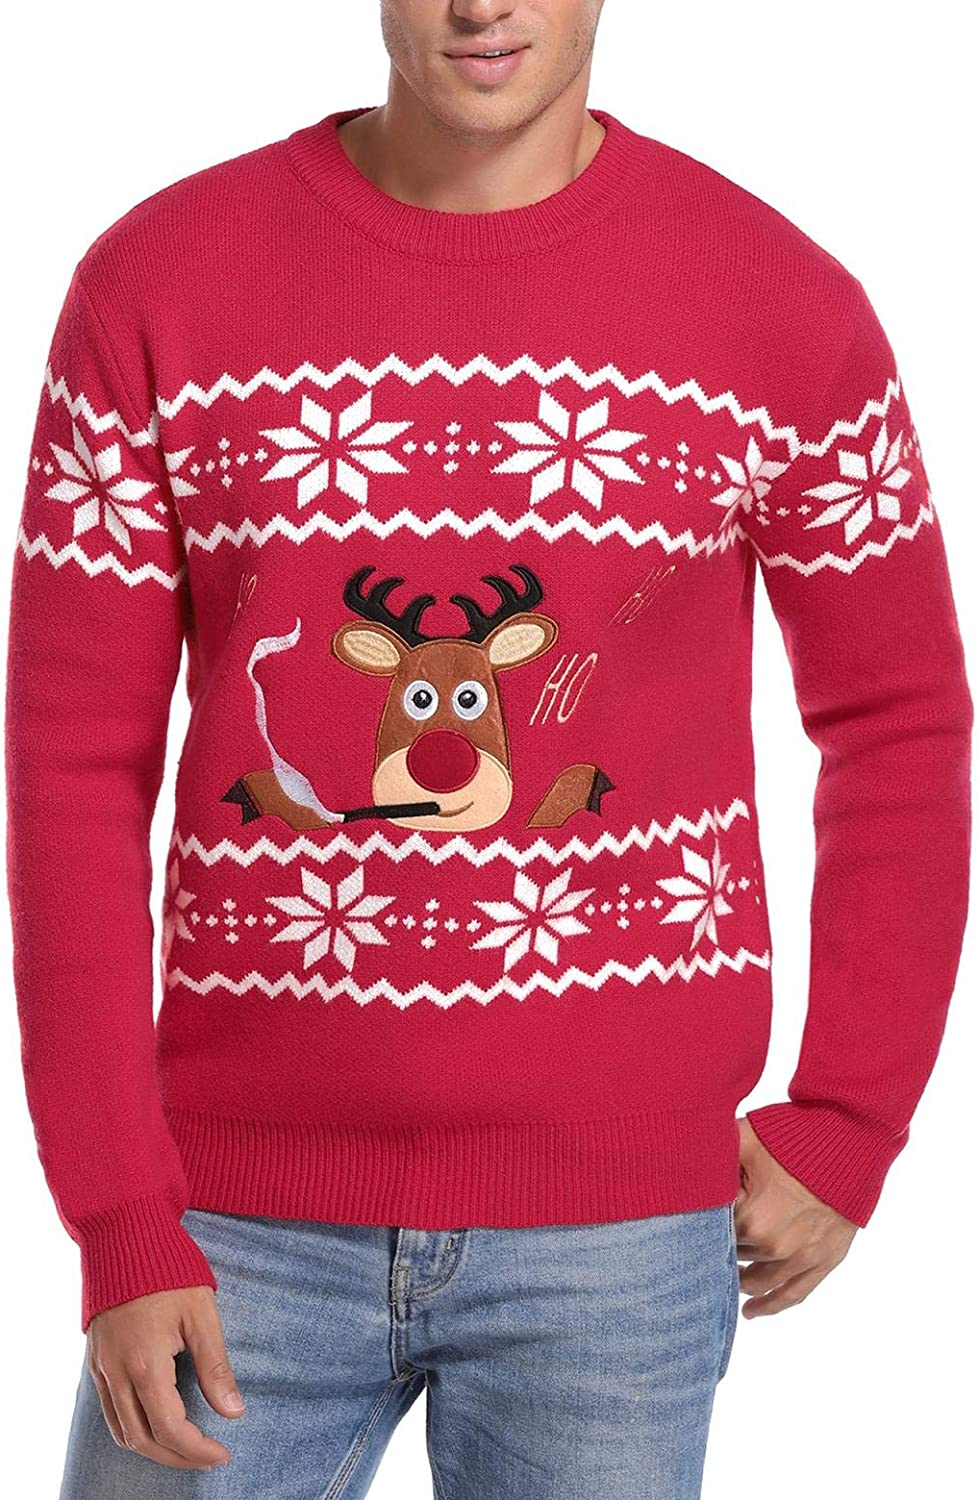 Abollria Christmas Sweater for Men Cute Deer Knitted Sweater for Mens Pullover Tops